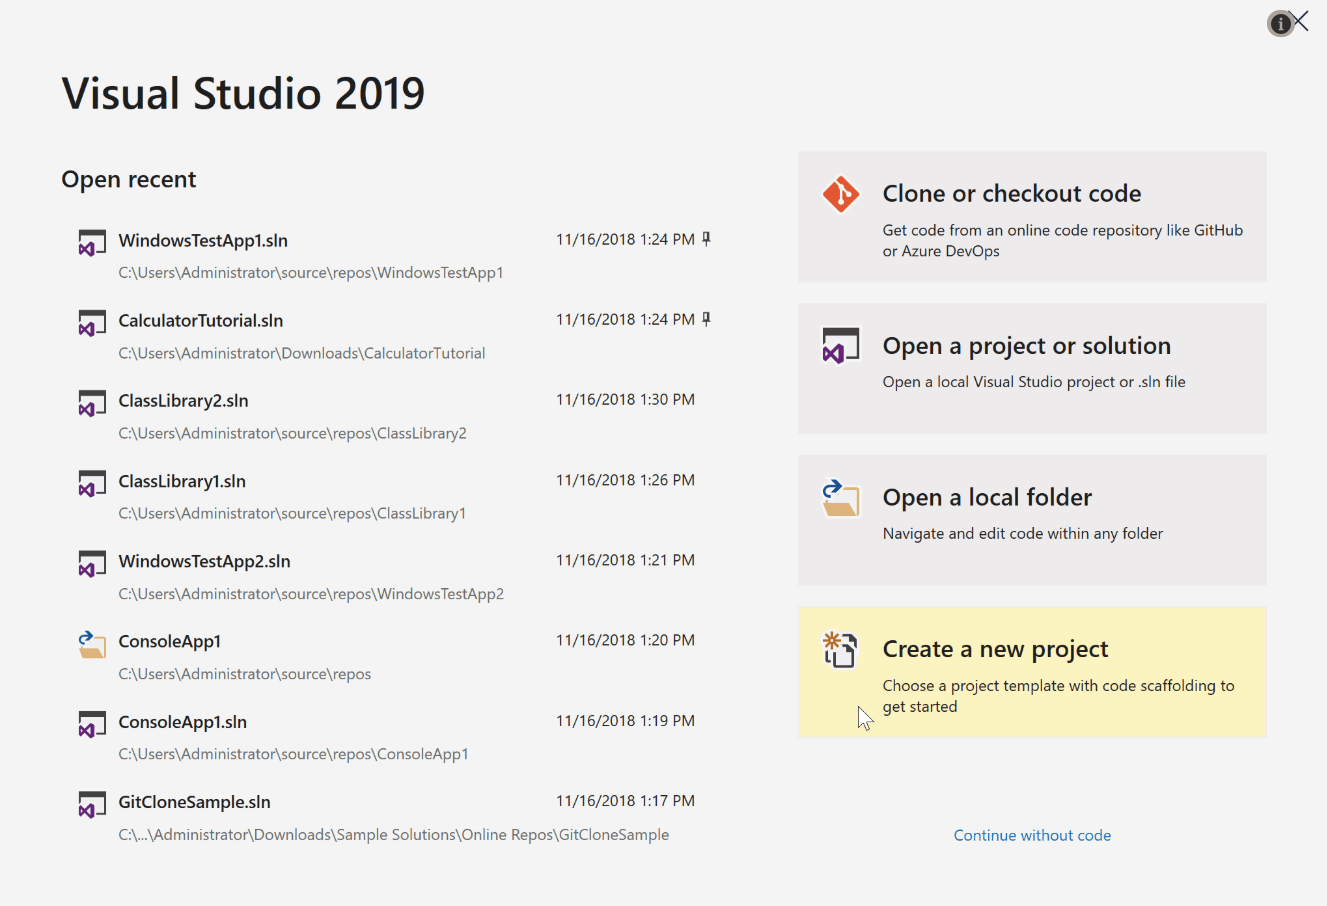 visualstudio2019_1